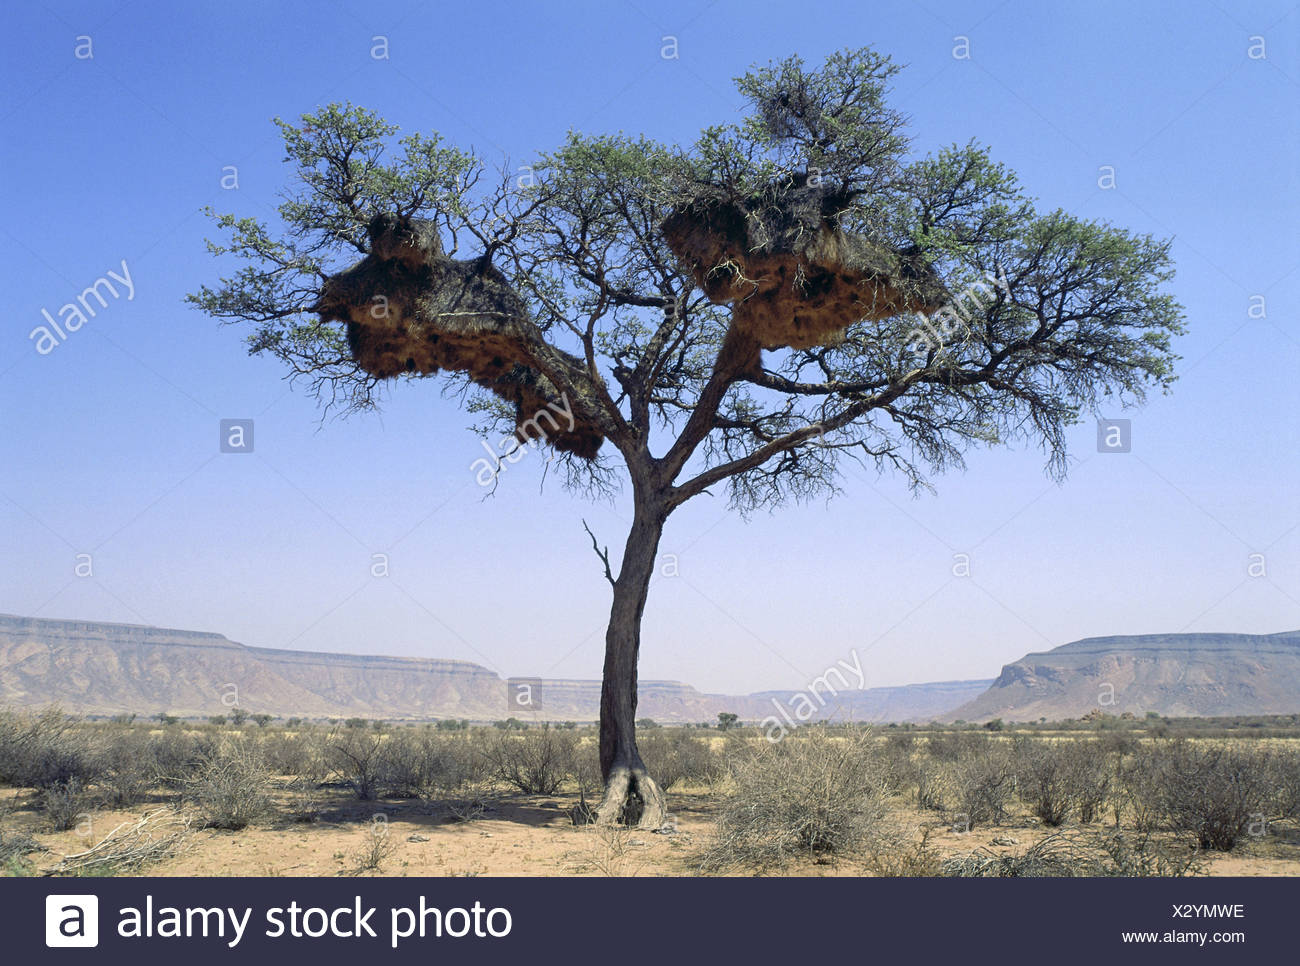 zoology / animals, avian / bird, Widowbirds, (Ploceidae), tree with nests, Namib-Naukluft Park, Namibia, distribution: Africa, Australia, Europe, Asia, Additional-Rights-Clearance-Info-Not-Available - Stock Image